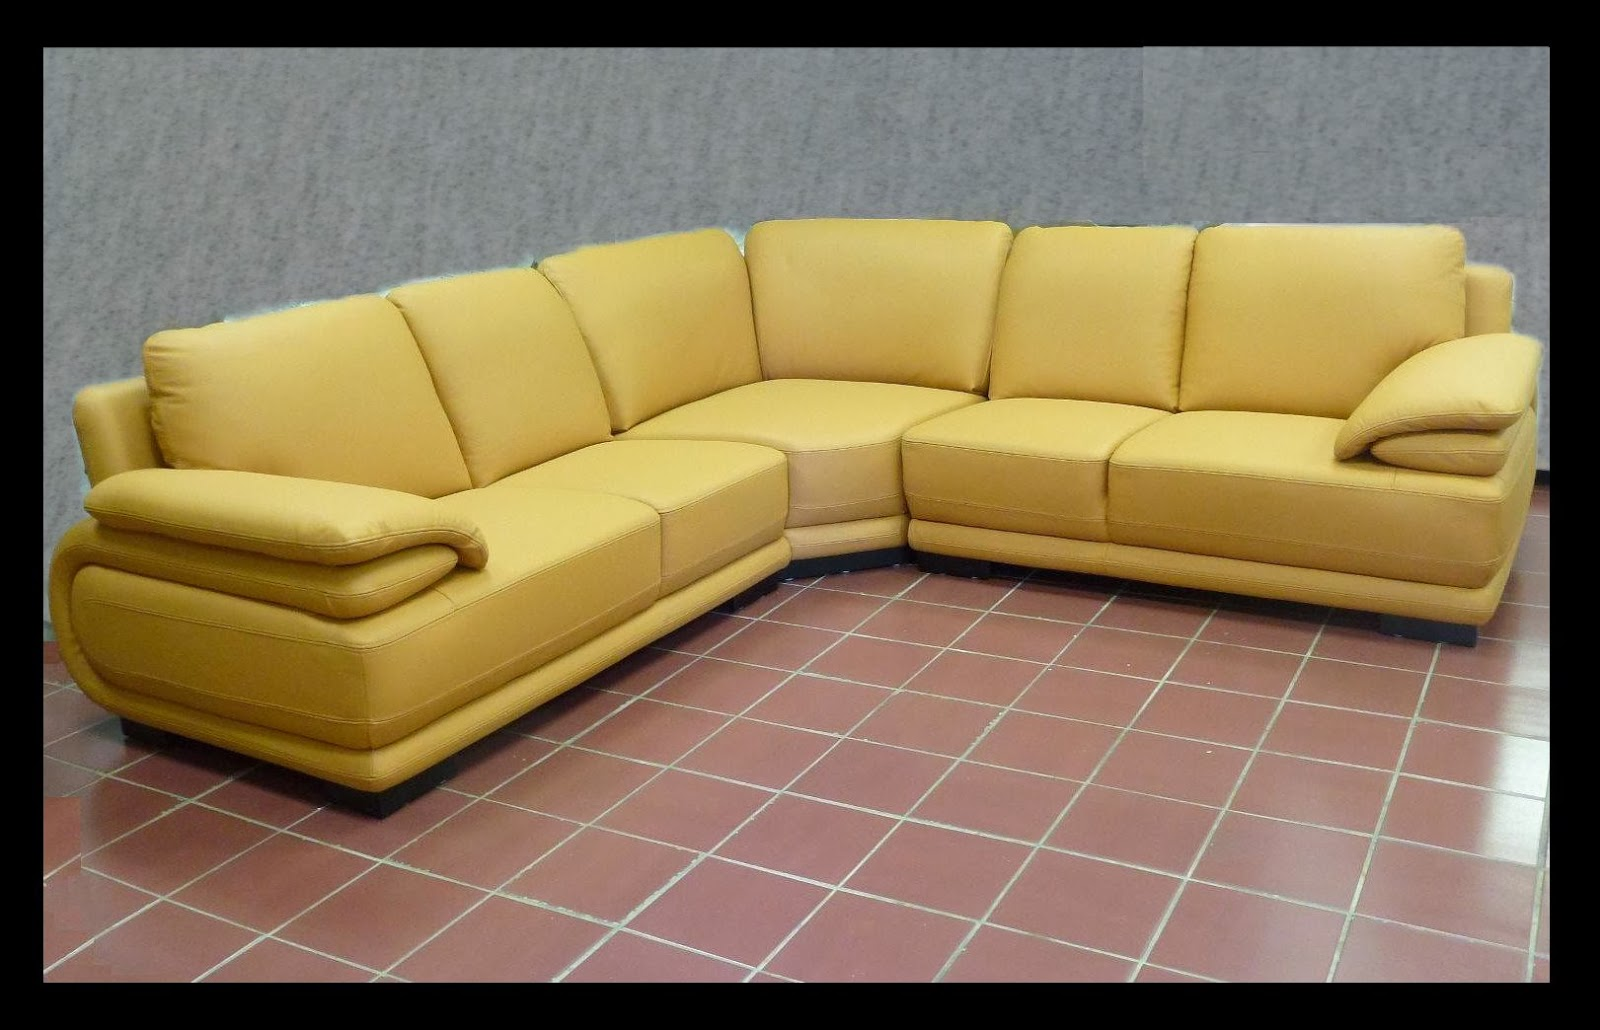 Leather Sectionals For Sale Interior Concepts Furniture Specializing In Natuzzi